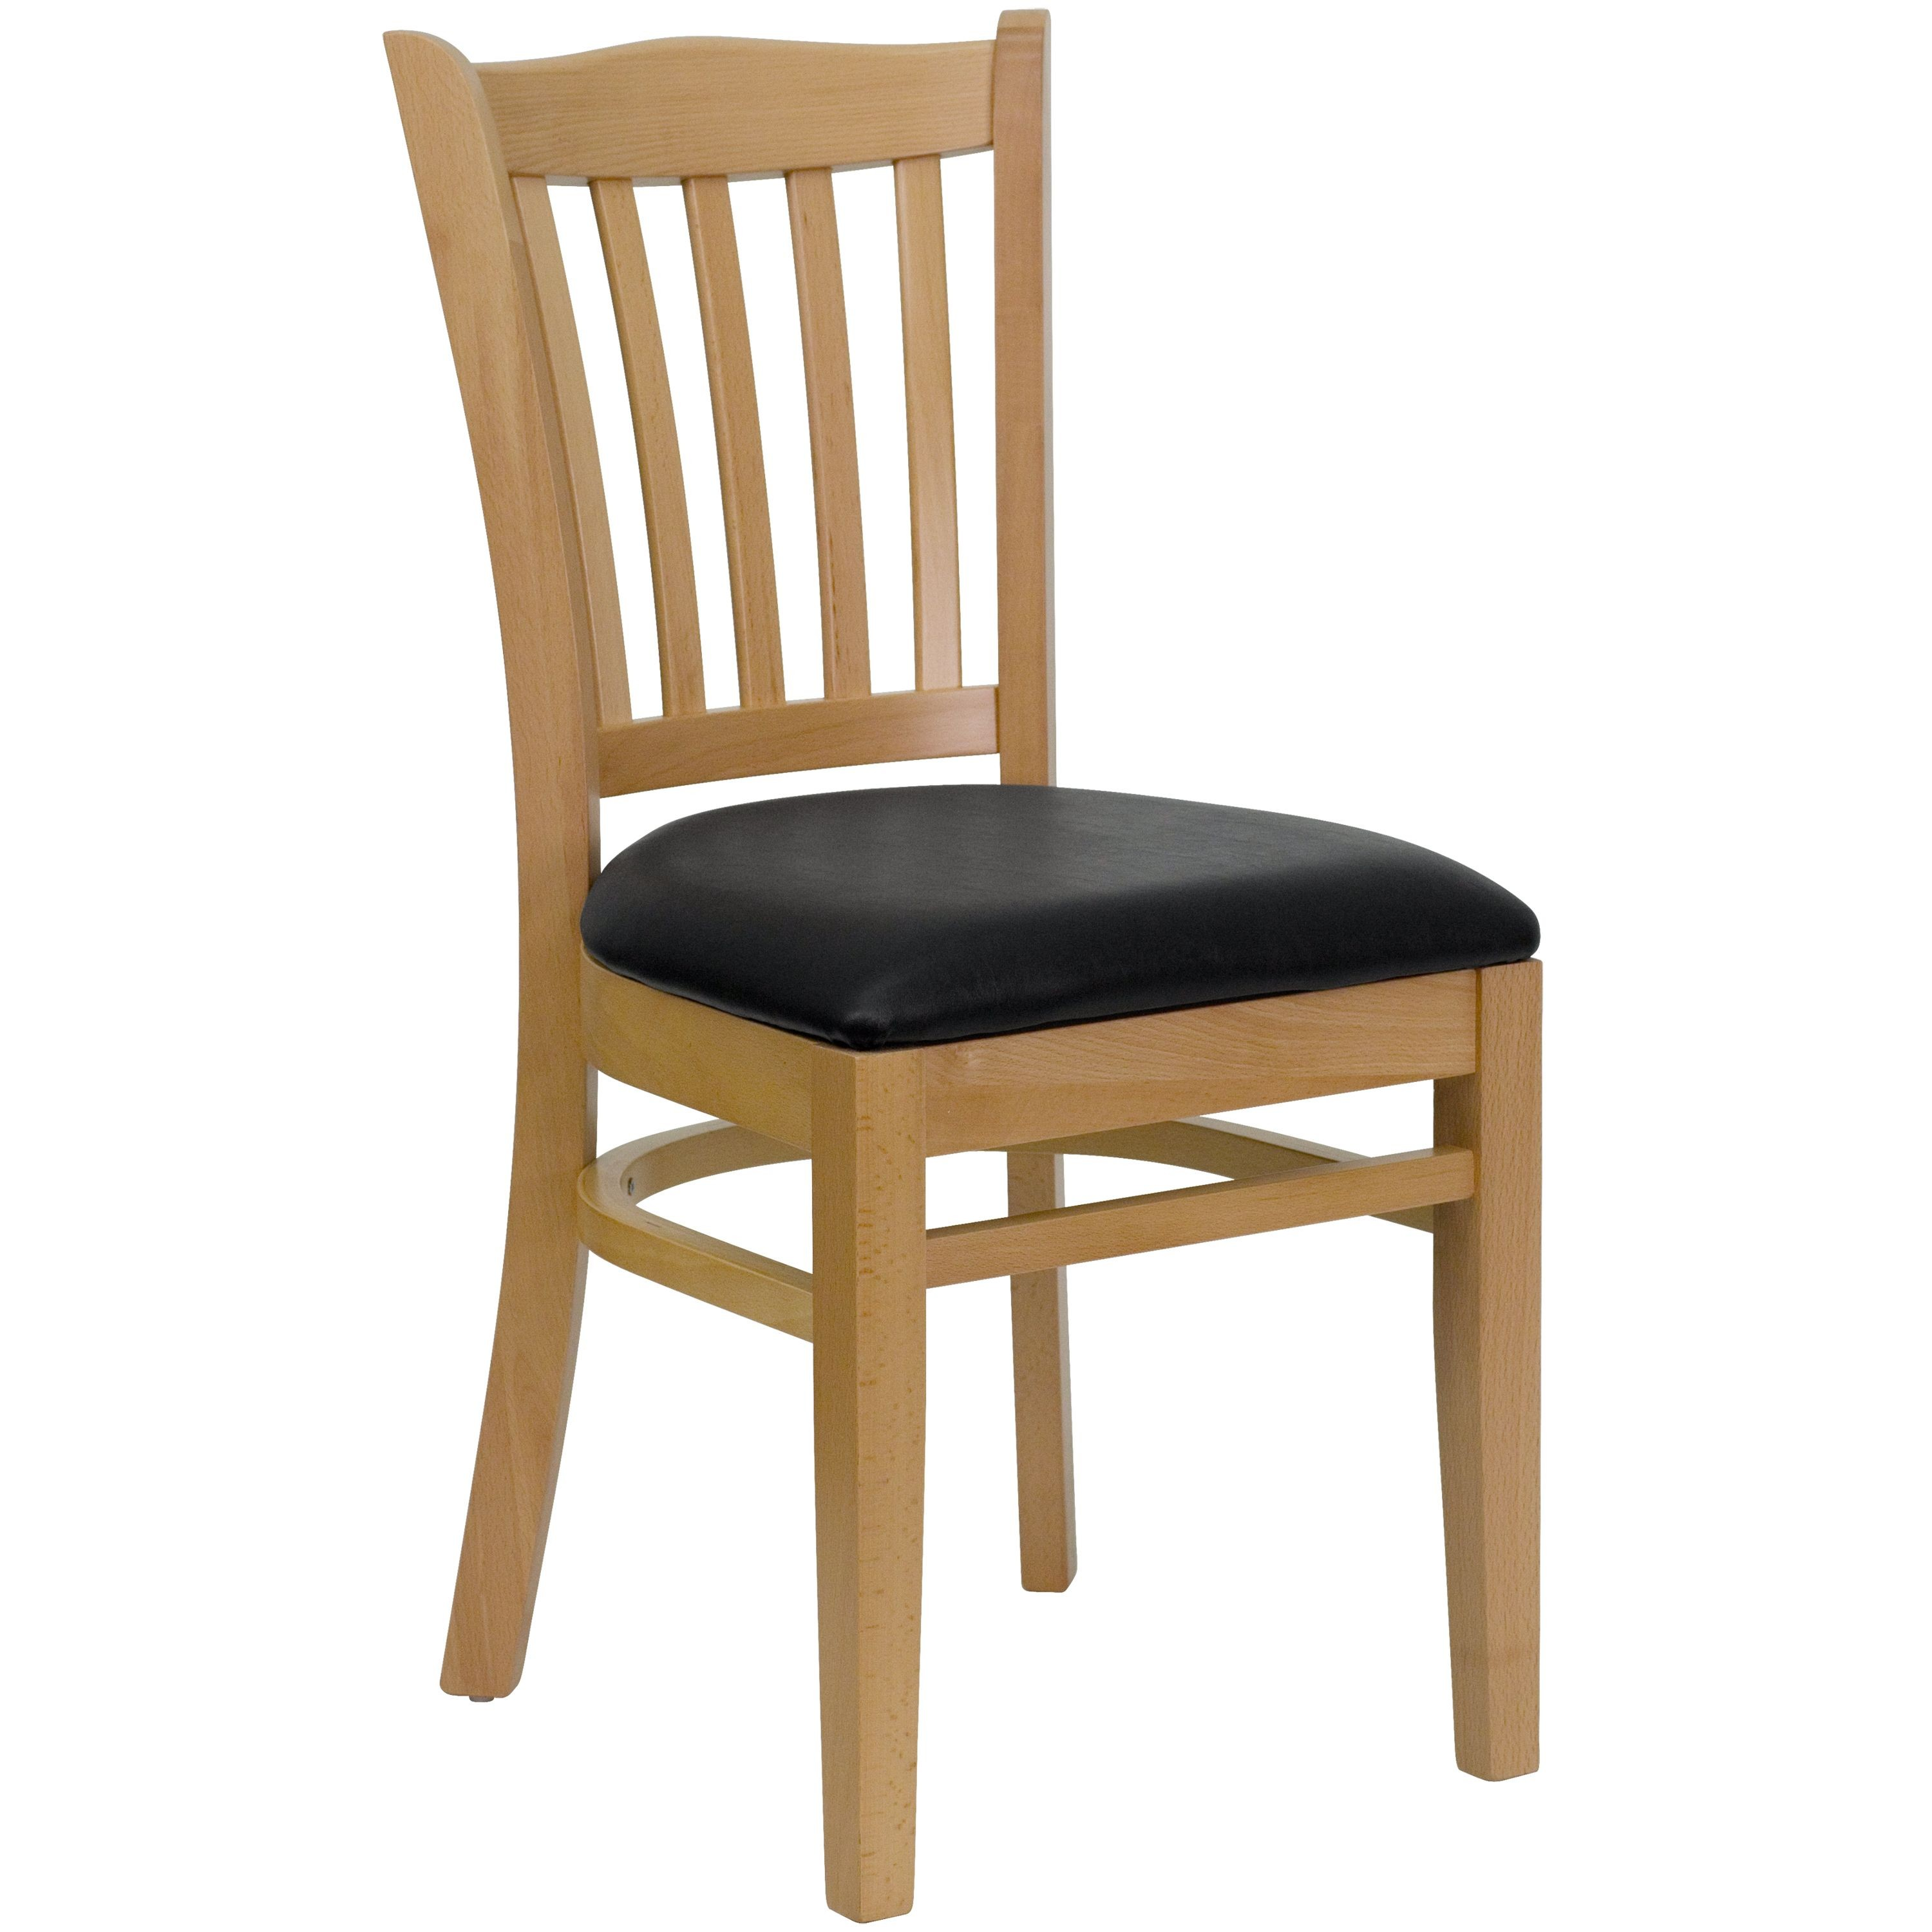 Flash Furniture XU-DGW0008VRT-NAT-BLKV-GG Vertical Slat Back Natural Wood Chair with Black Vinyl Seat